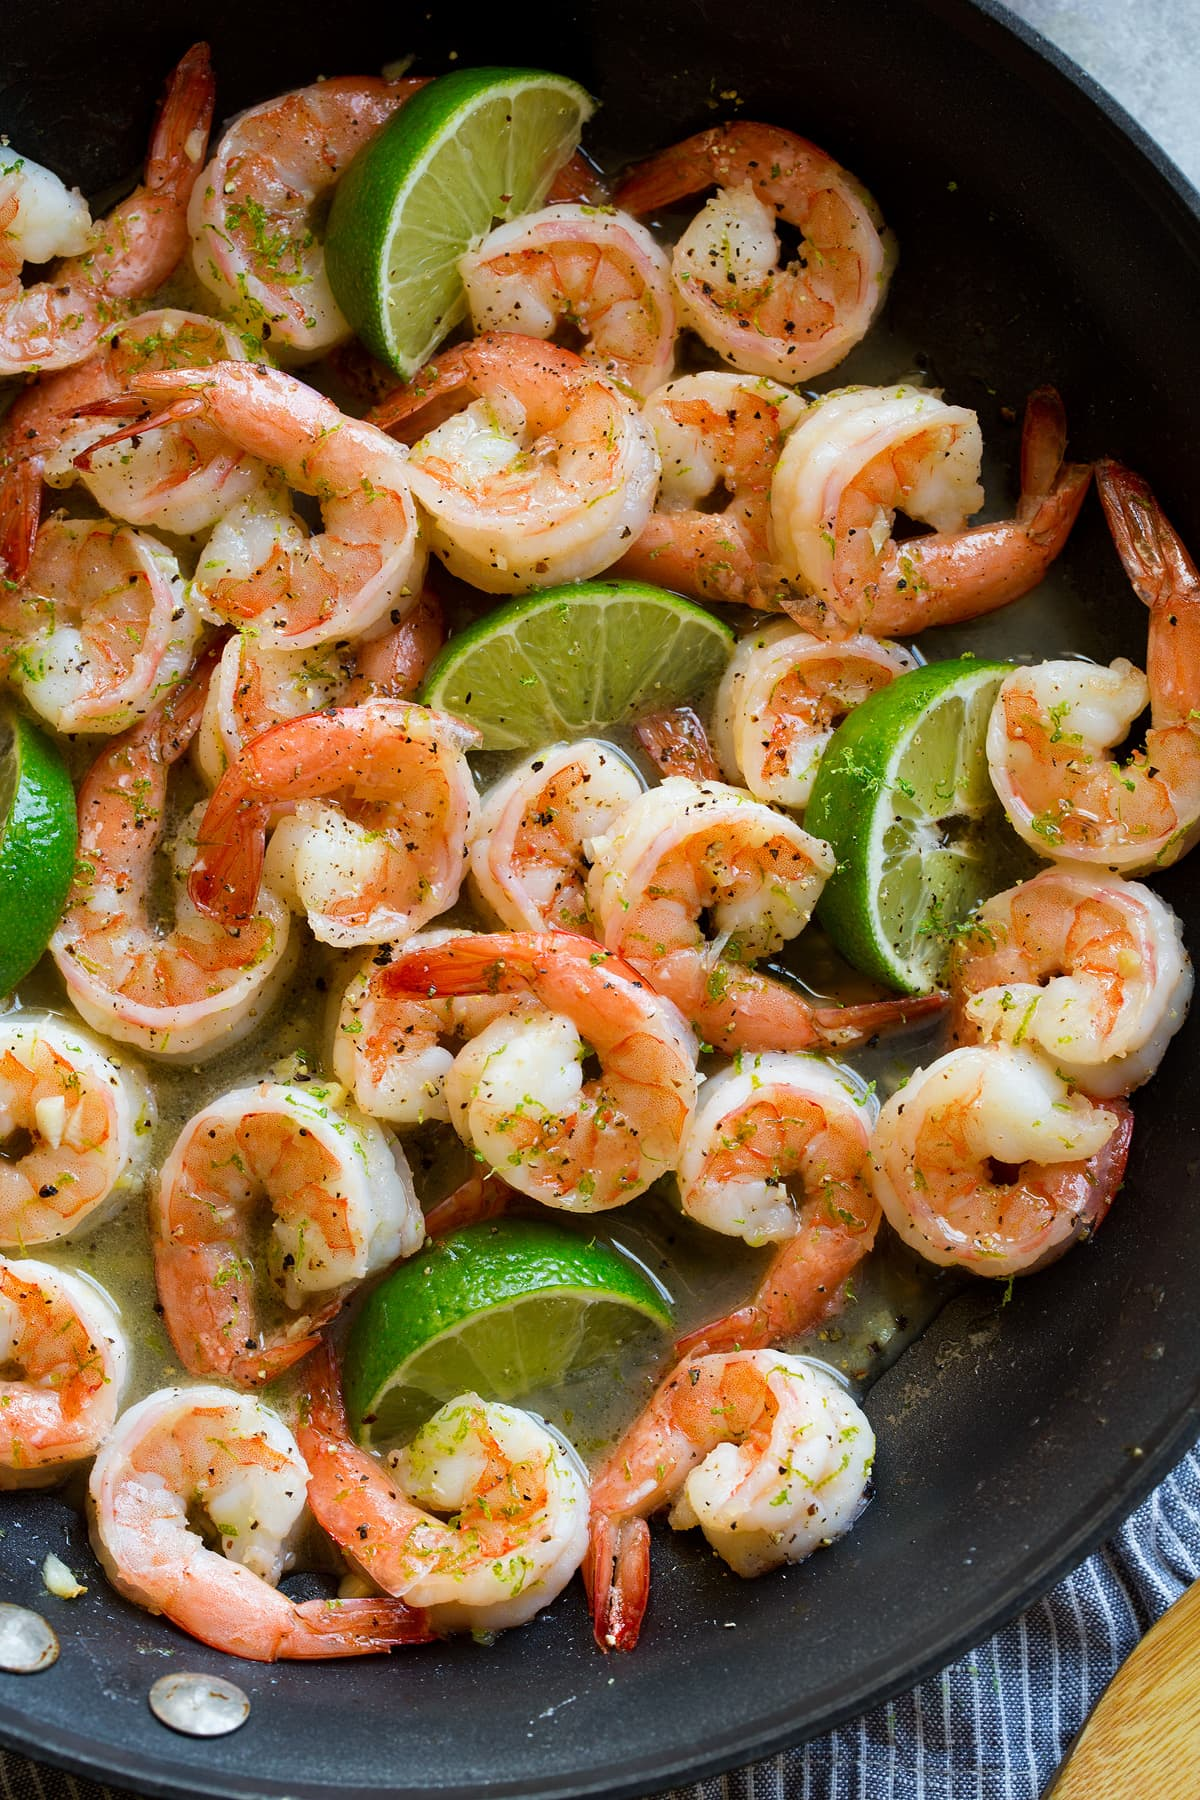 Shrimp with honey lime sauce in a black skillet.